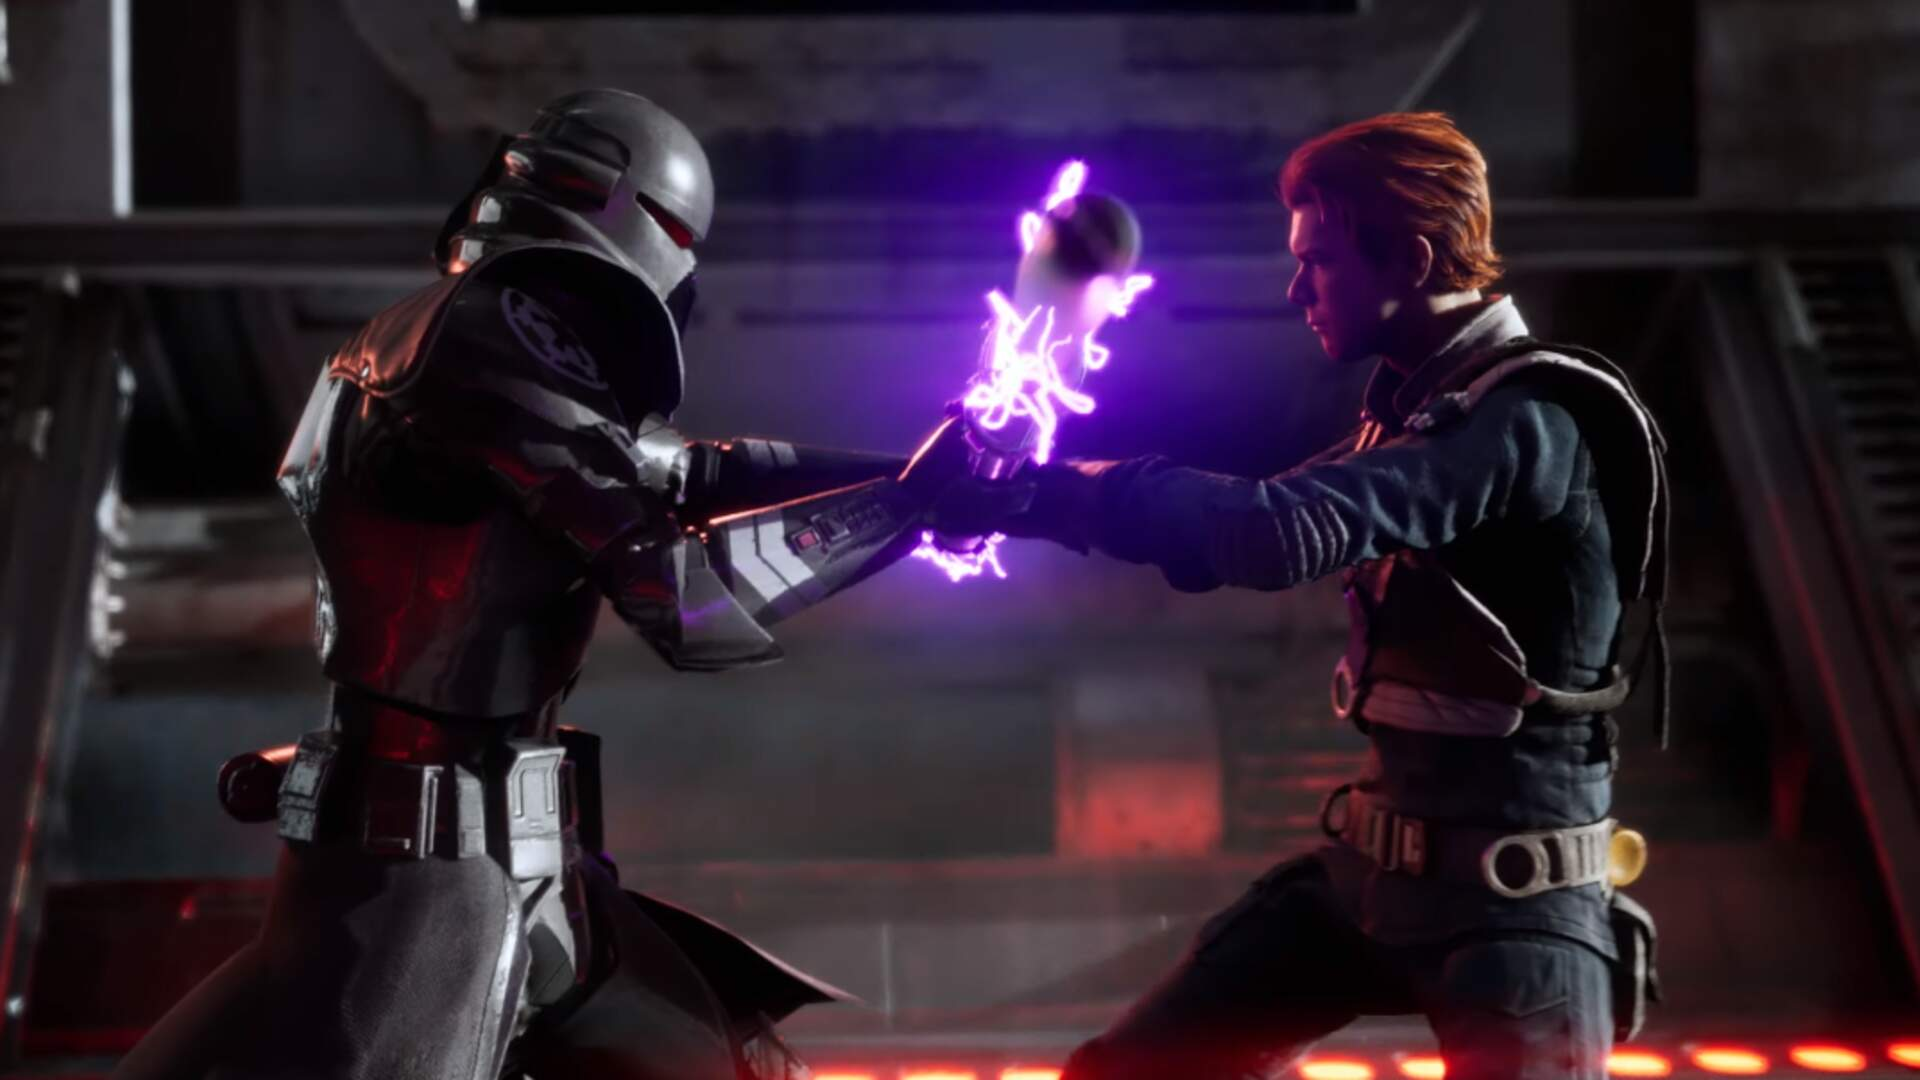 Star Wars Jedi: Fallen Order First Ever Gameplay Will Premiere at EA Play During E3